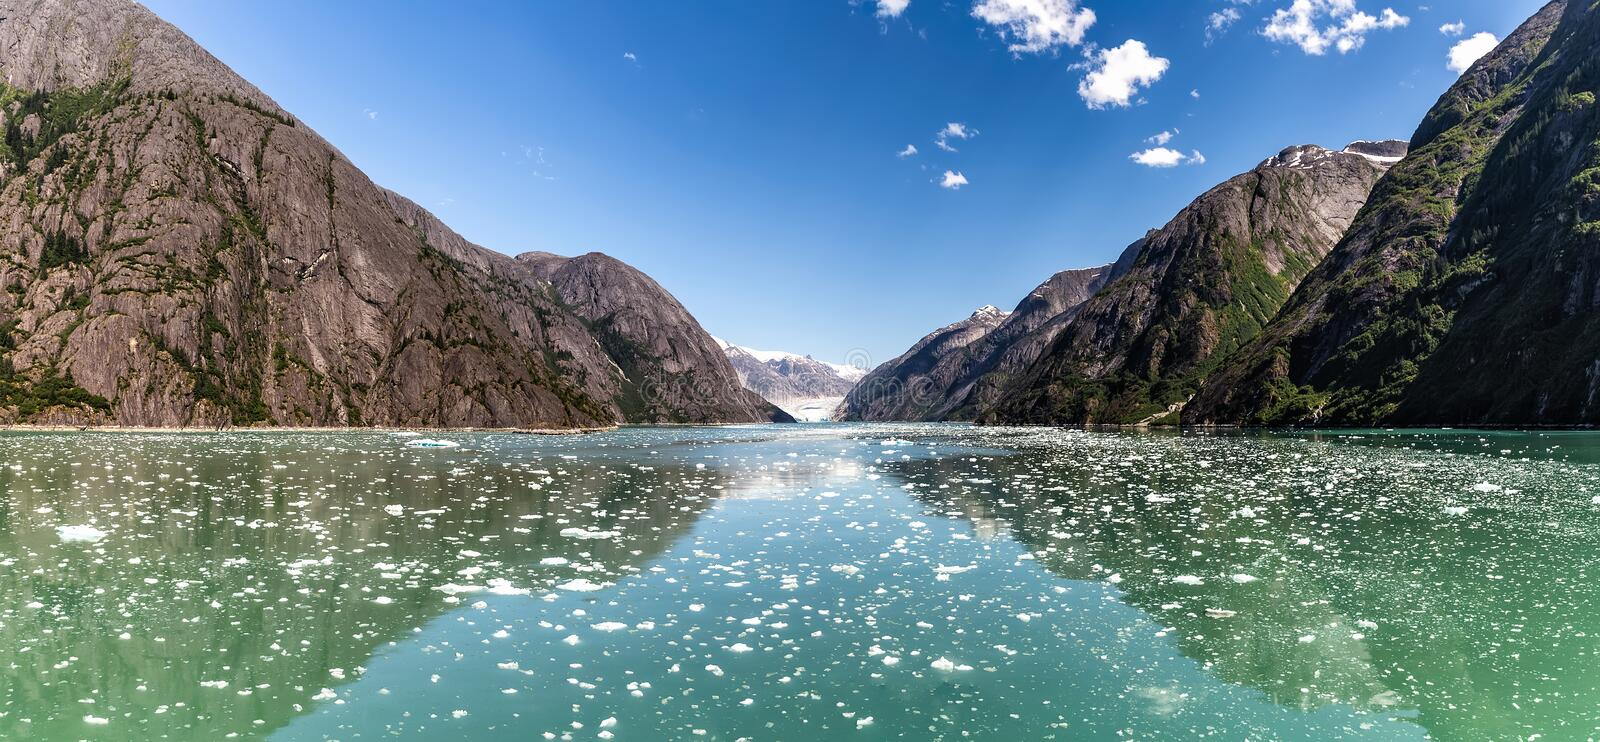 Tracy Arm Fjord in Alaska during summer. Panorama. royalty free stock image